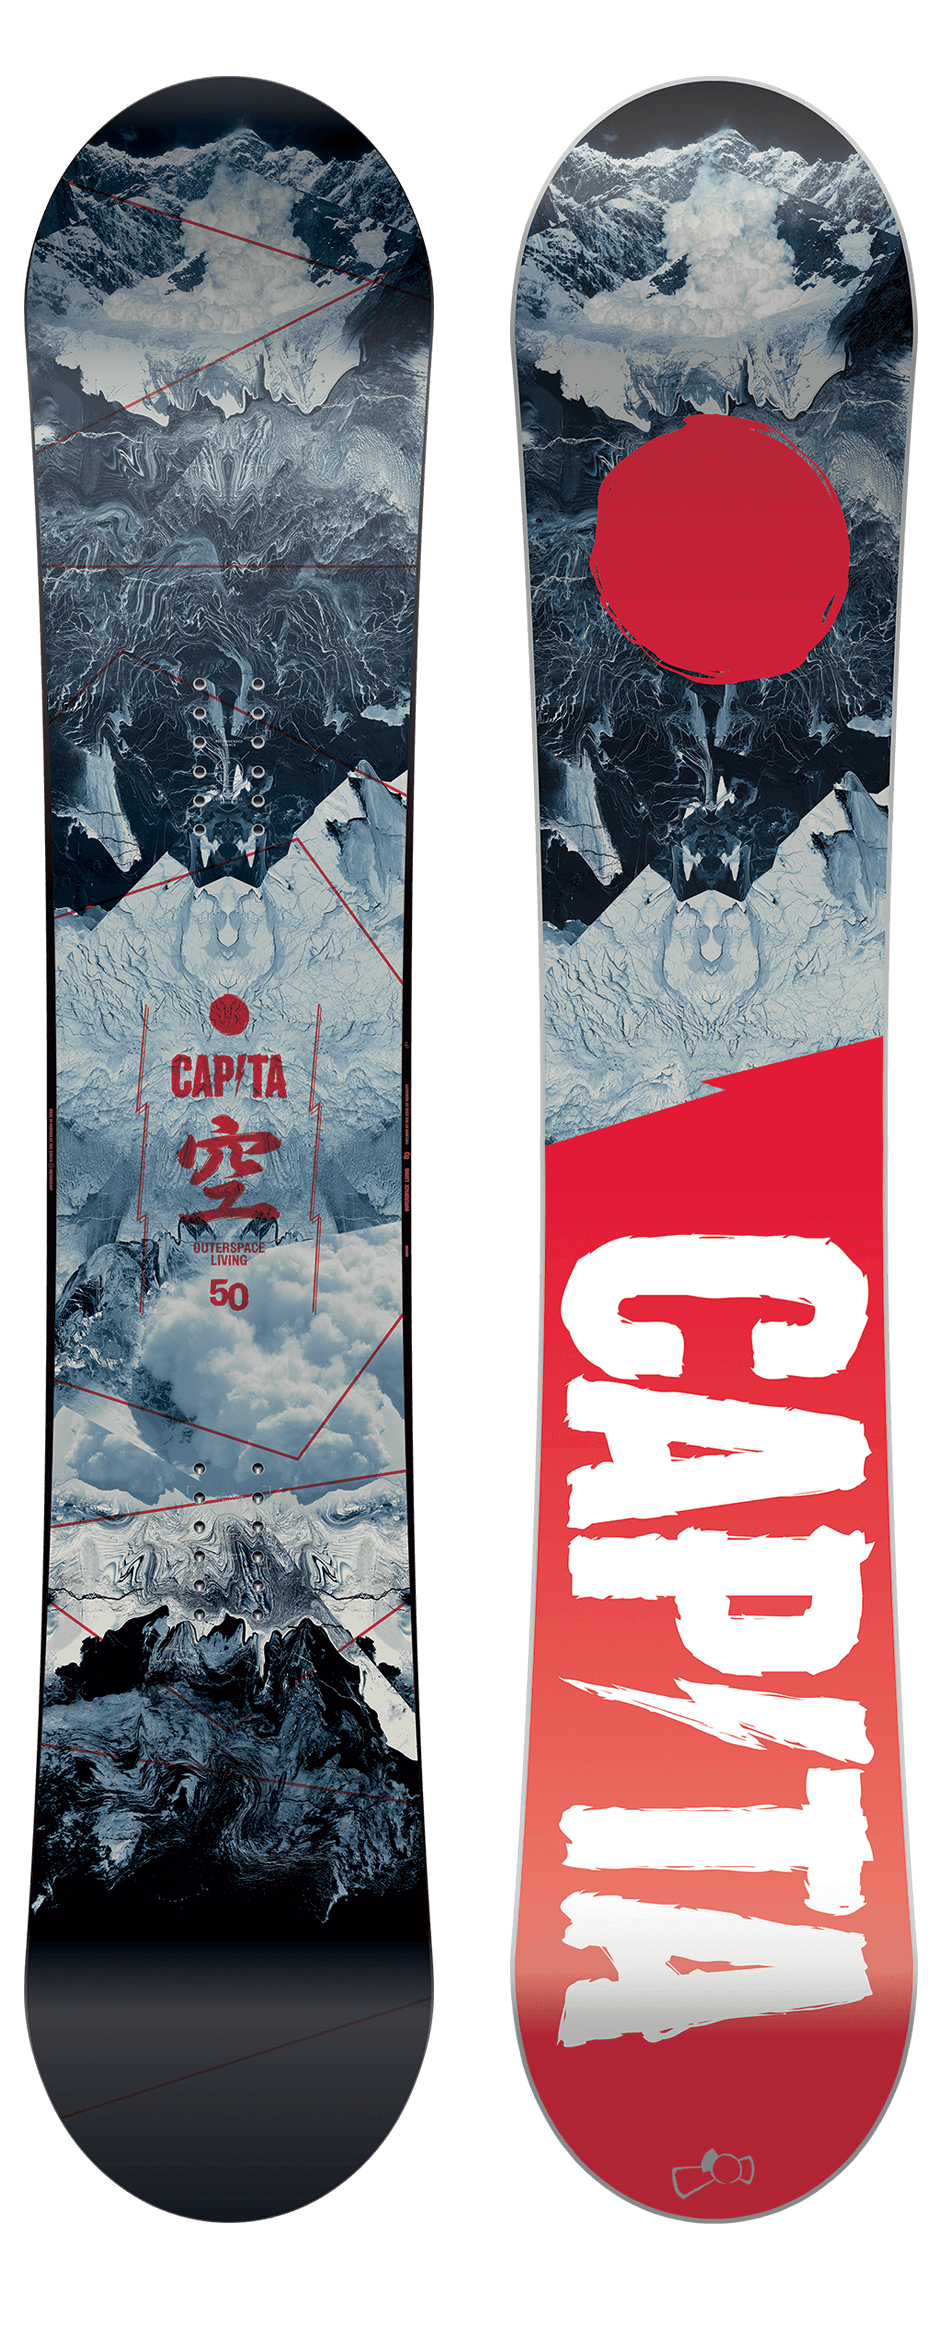 Snowboarding drawing sport. Capita outerspace living snowboard